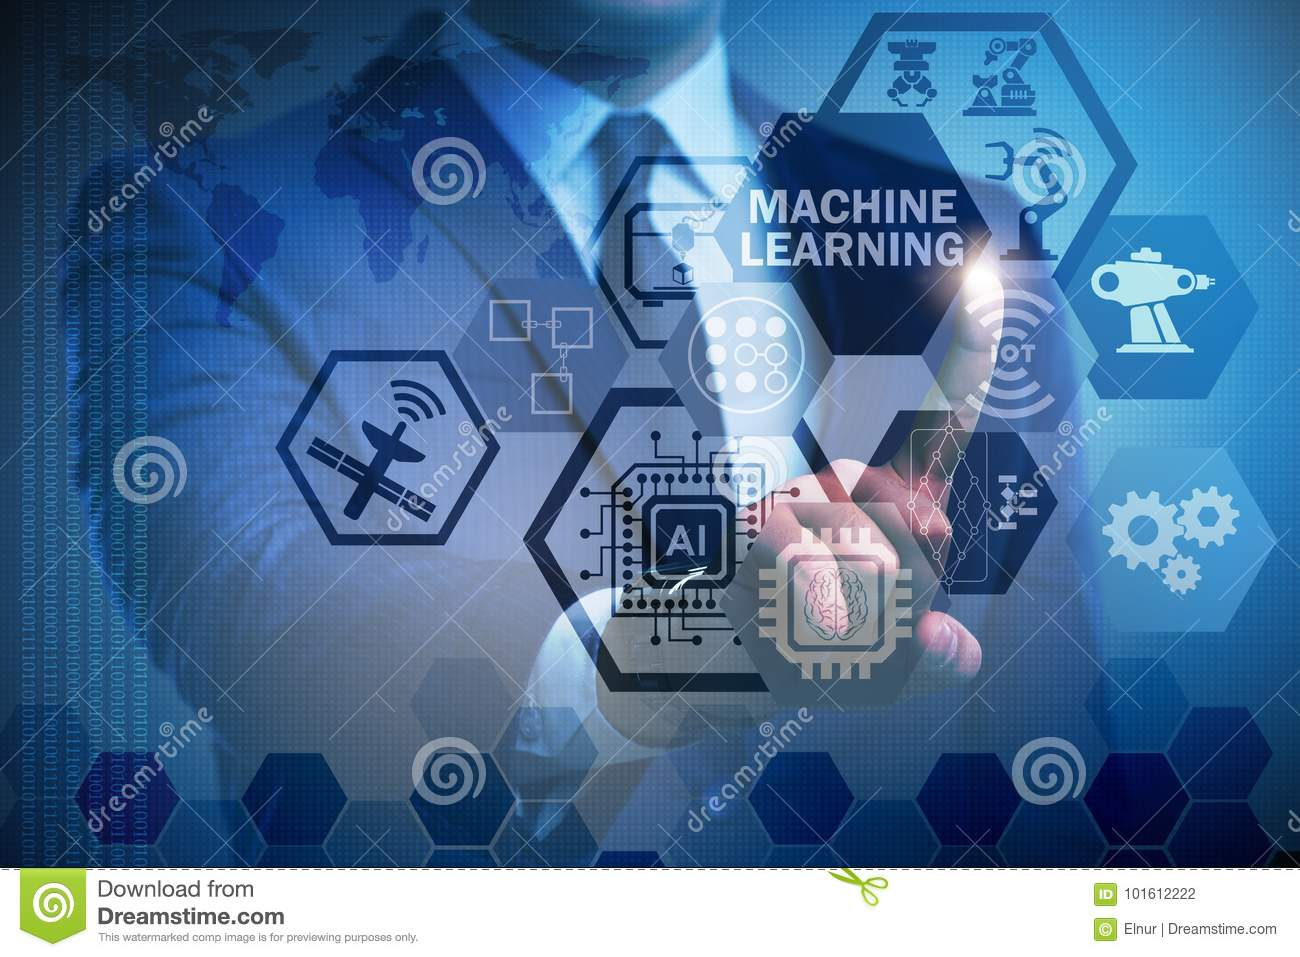 The machine learning computing concept of modern it technology